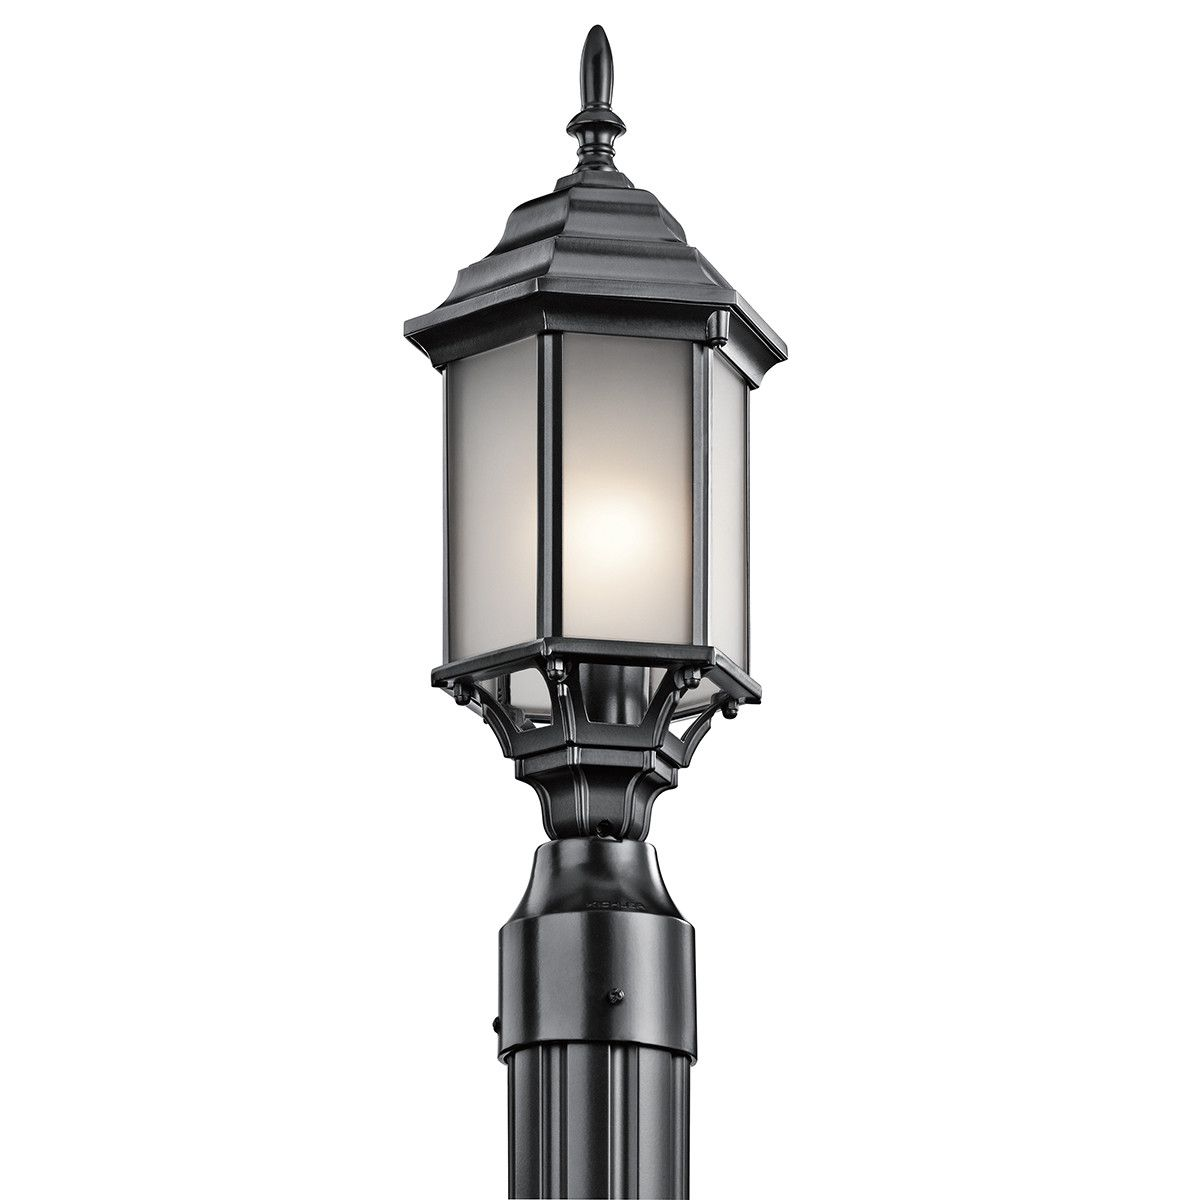 Chesapeake 1 Light Outdoor Post Light